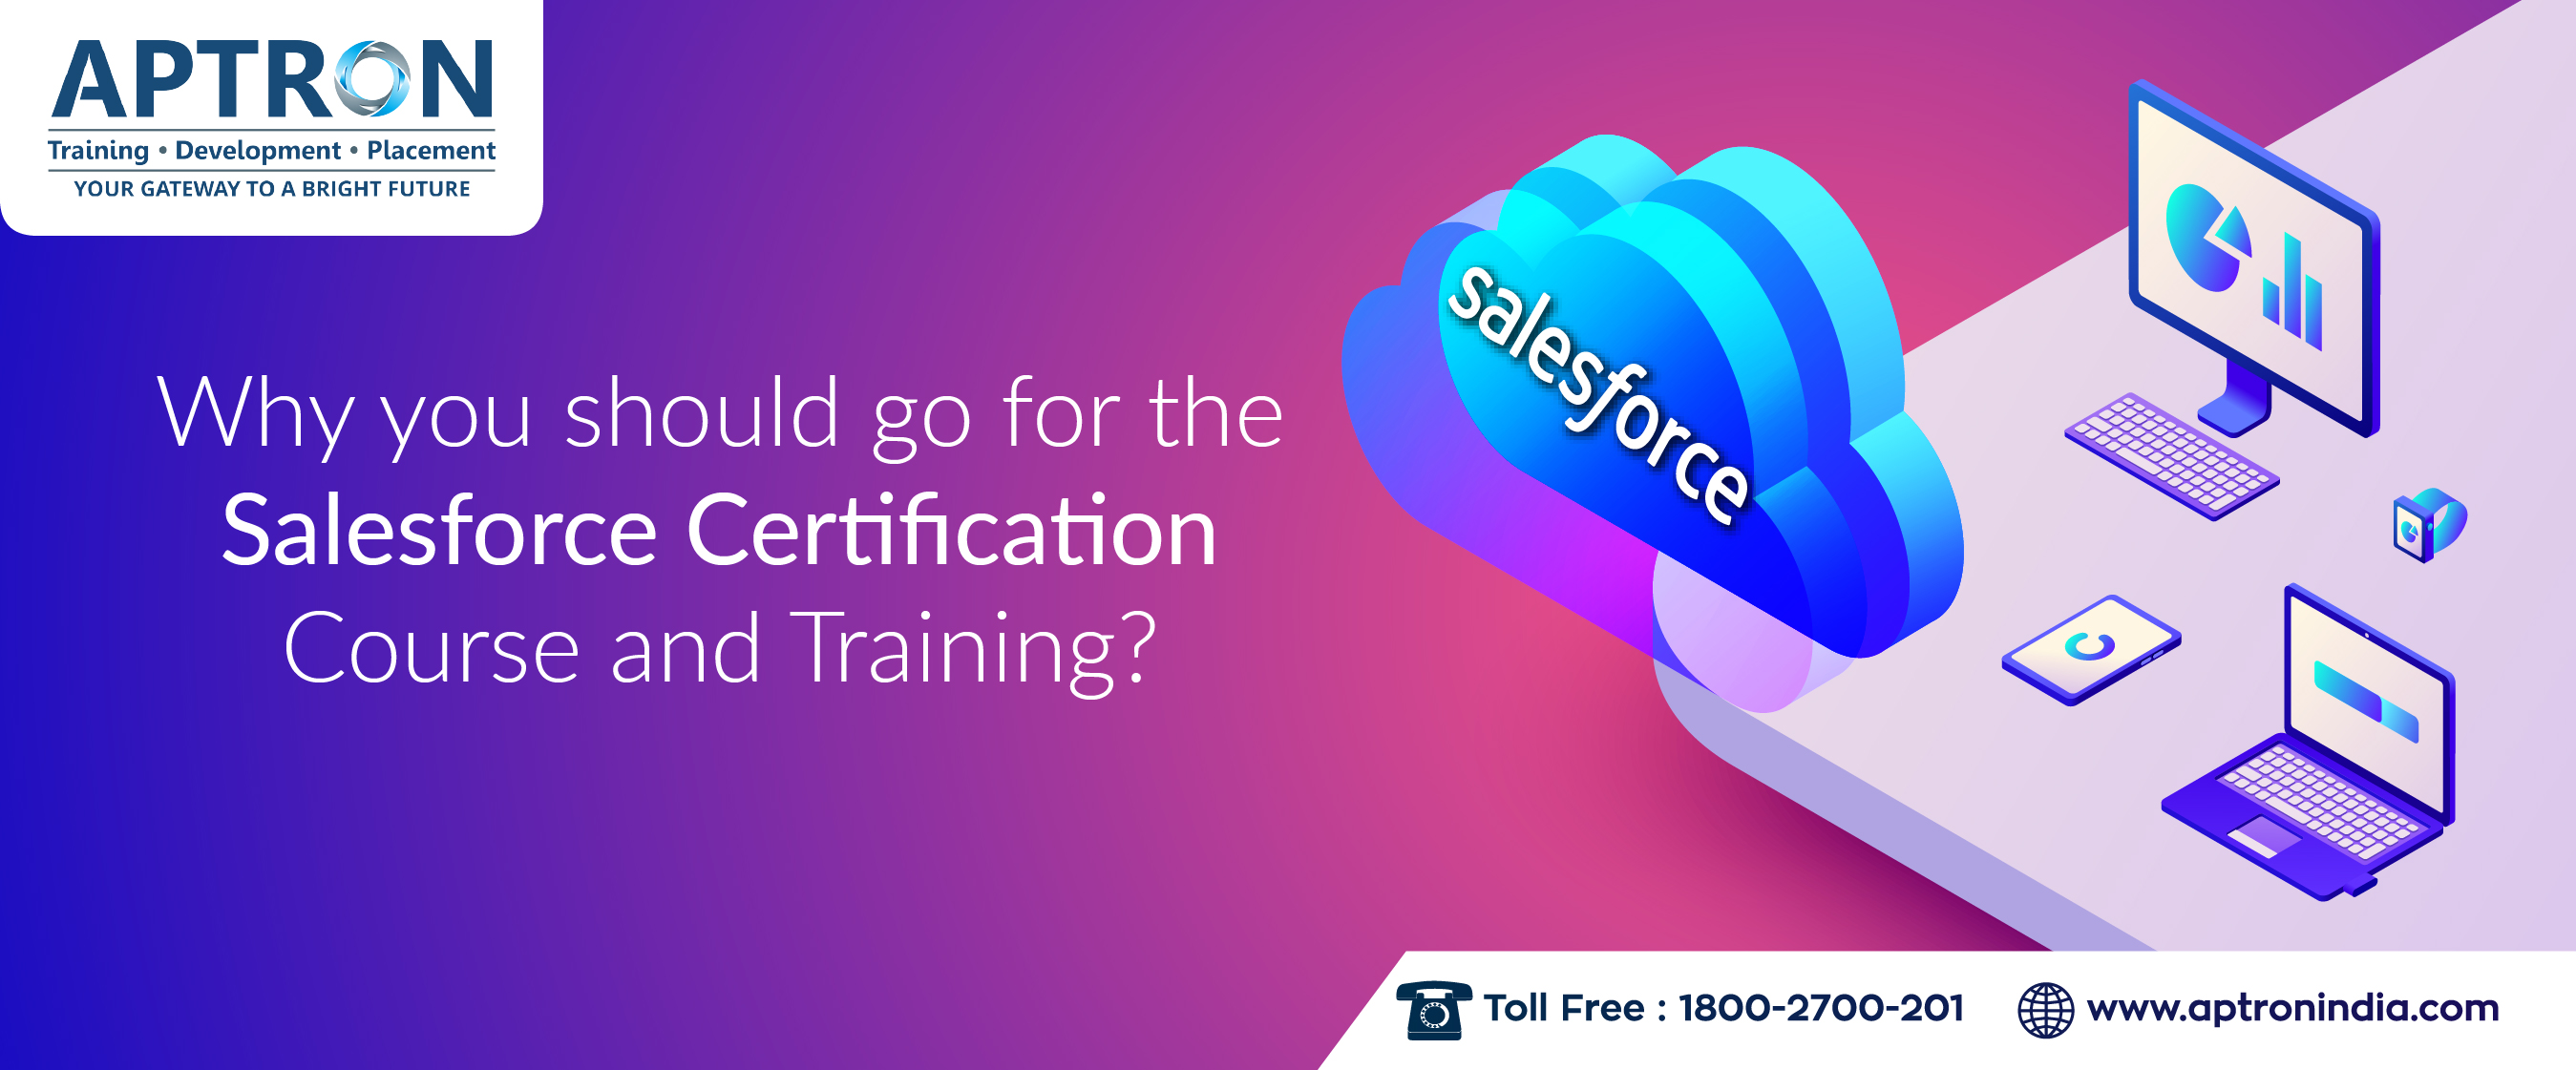 Why You Should Go For The Salesforce Certification Course And Training